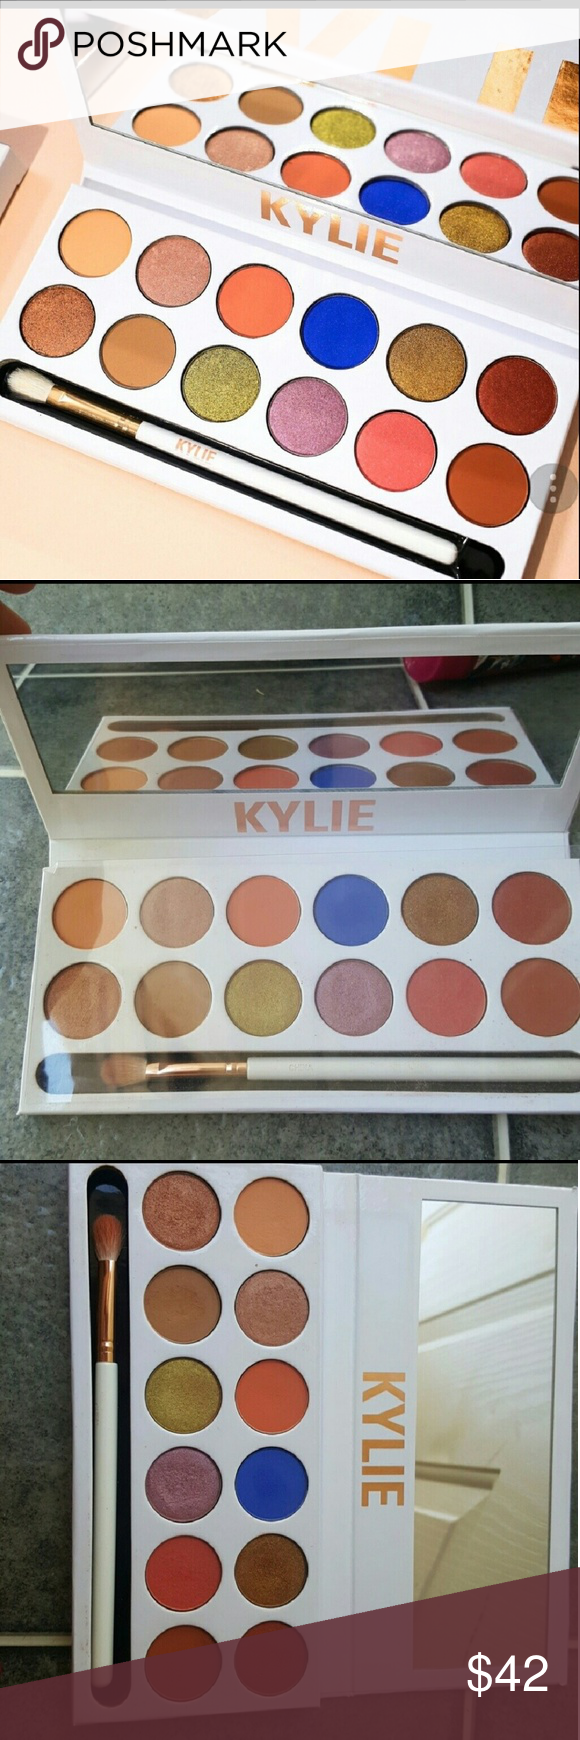 Kylie royal peach eyeshadow palette I swatched a few colors with q. Tips  some colors I never even touched. Colors weren't for me. 100% authentic  Trade for ...